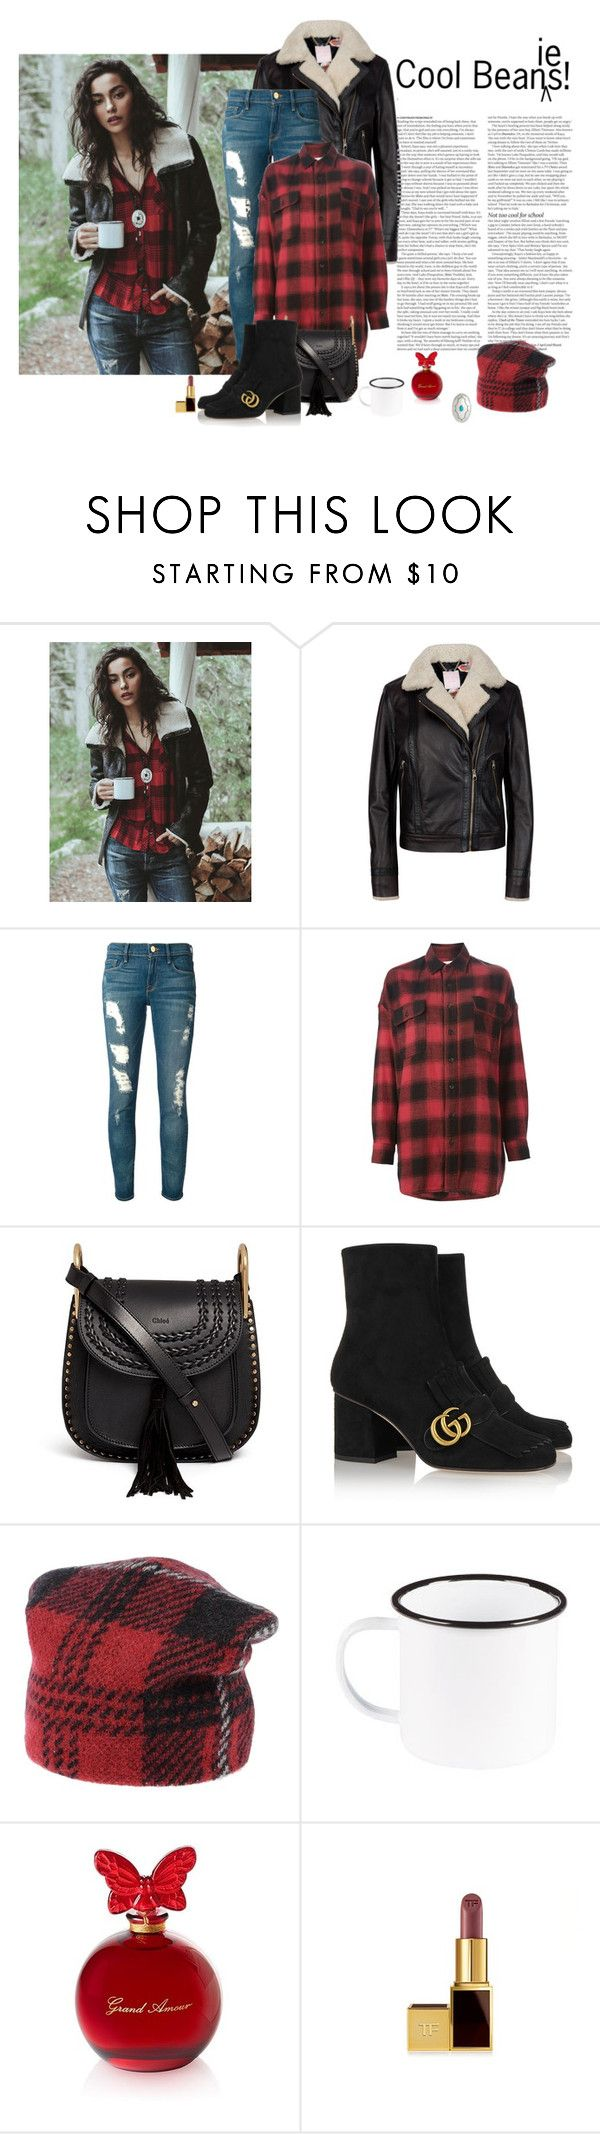 """""""Cool Beanies!"""" by katiethomas-2 ❤ liked on Polyvore featuring Ted Baker, Frame Denim, R13, Chloé, Gucci, ASOS, M Missoni, Argento Vivo, women's clothing and women's fashion"""